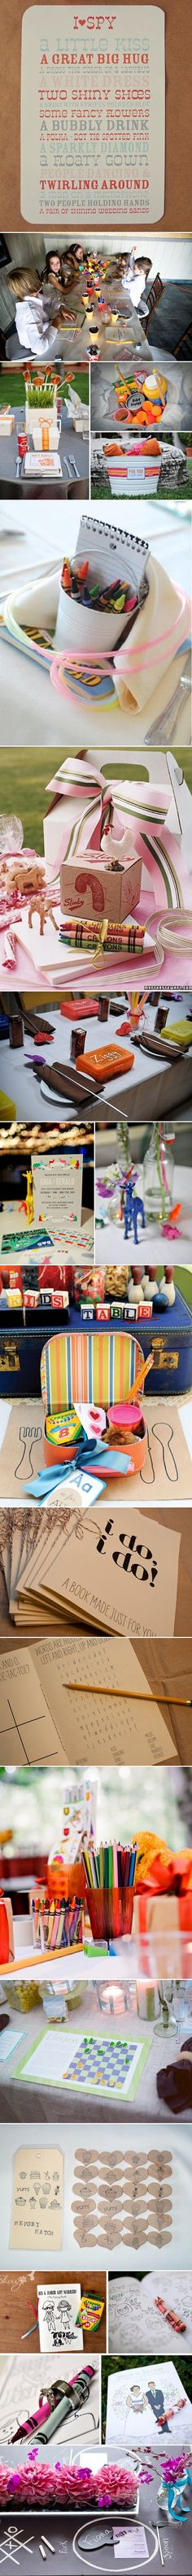 Great Ideas for Kids at a Wedding